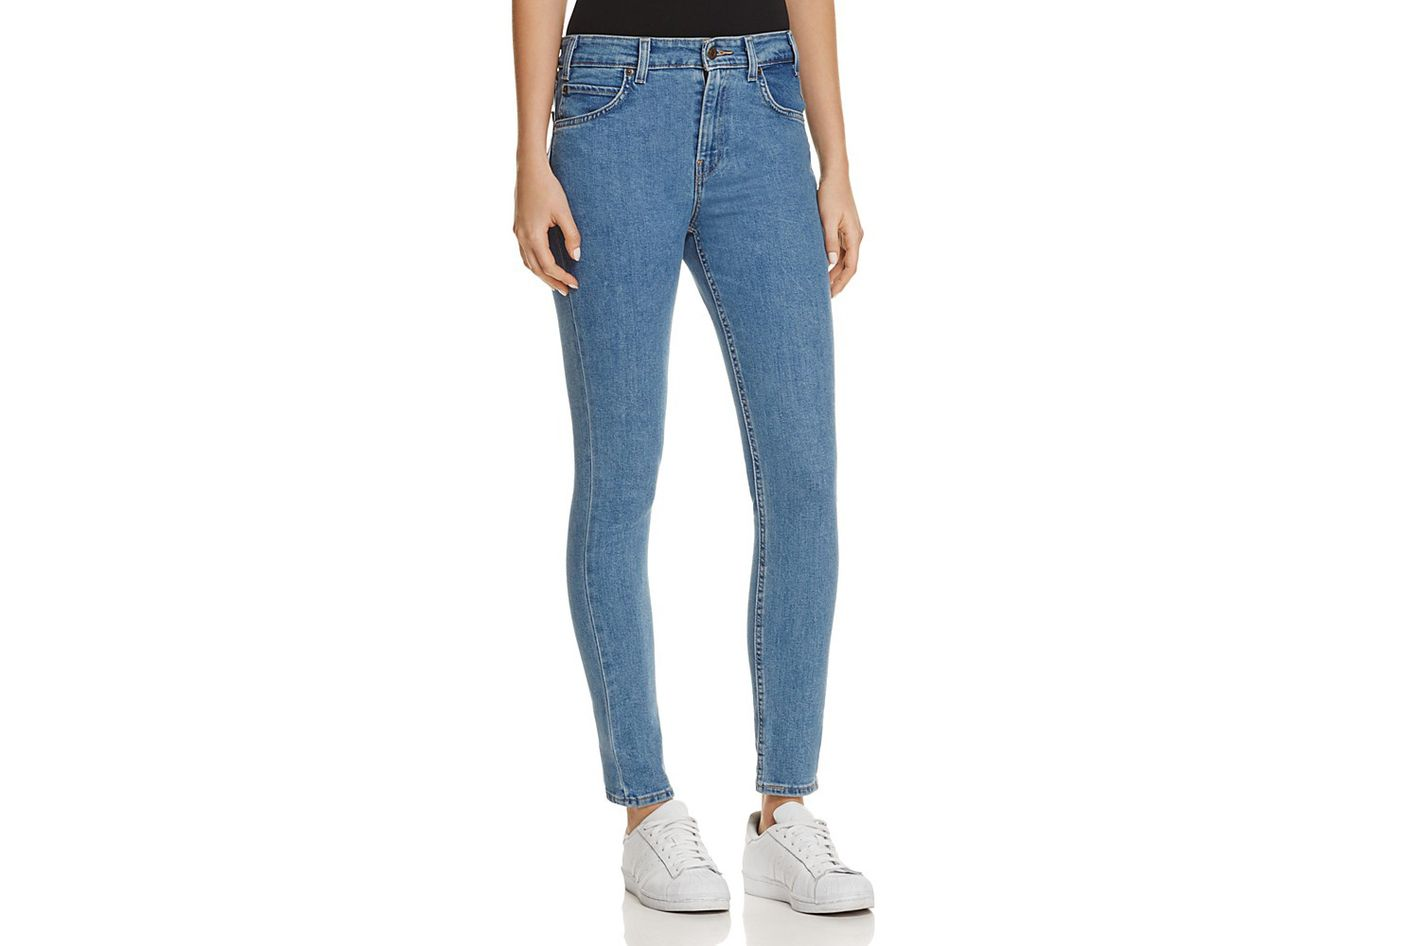 Levi's Orange Tab 721 High Rise Skinny Jeans in Watermark